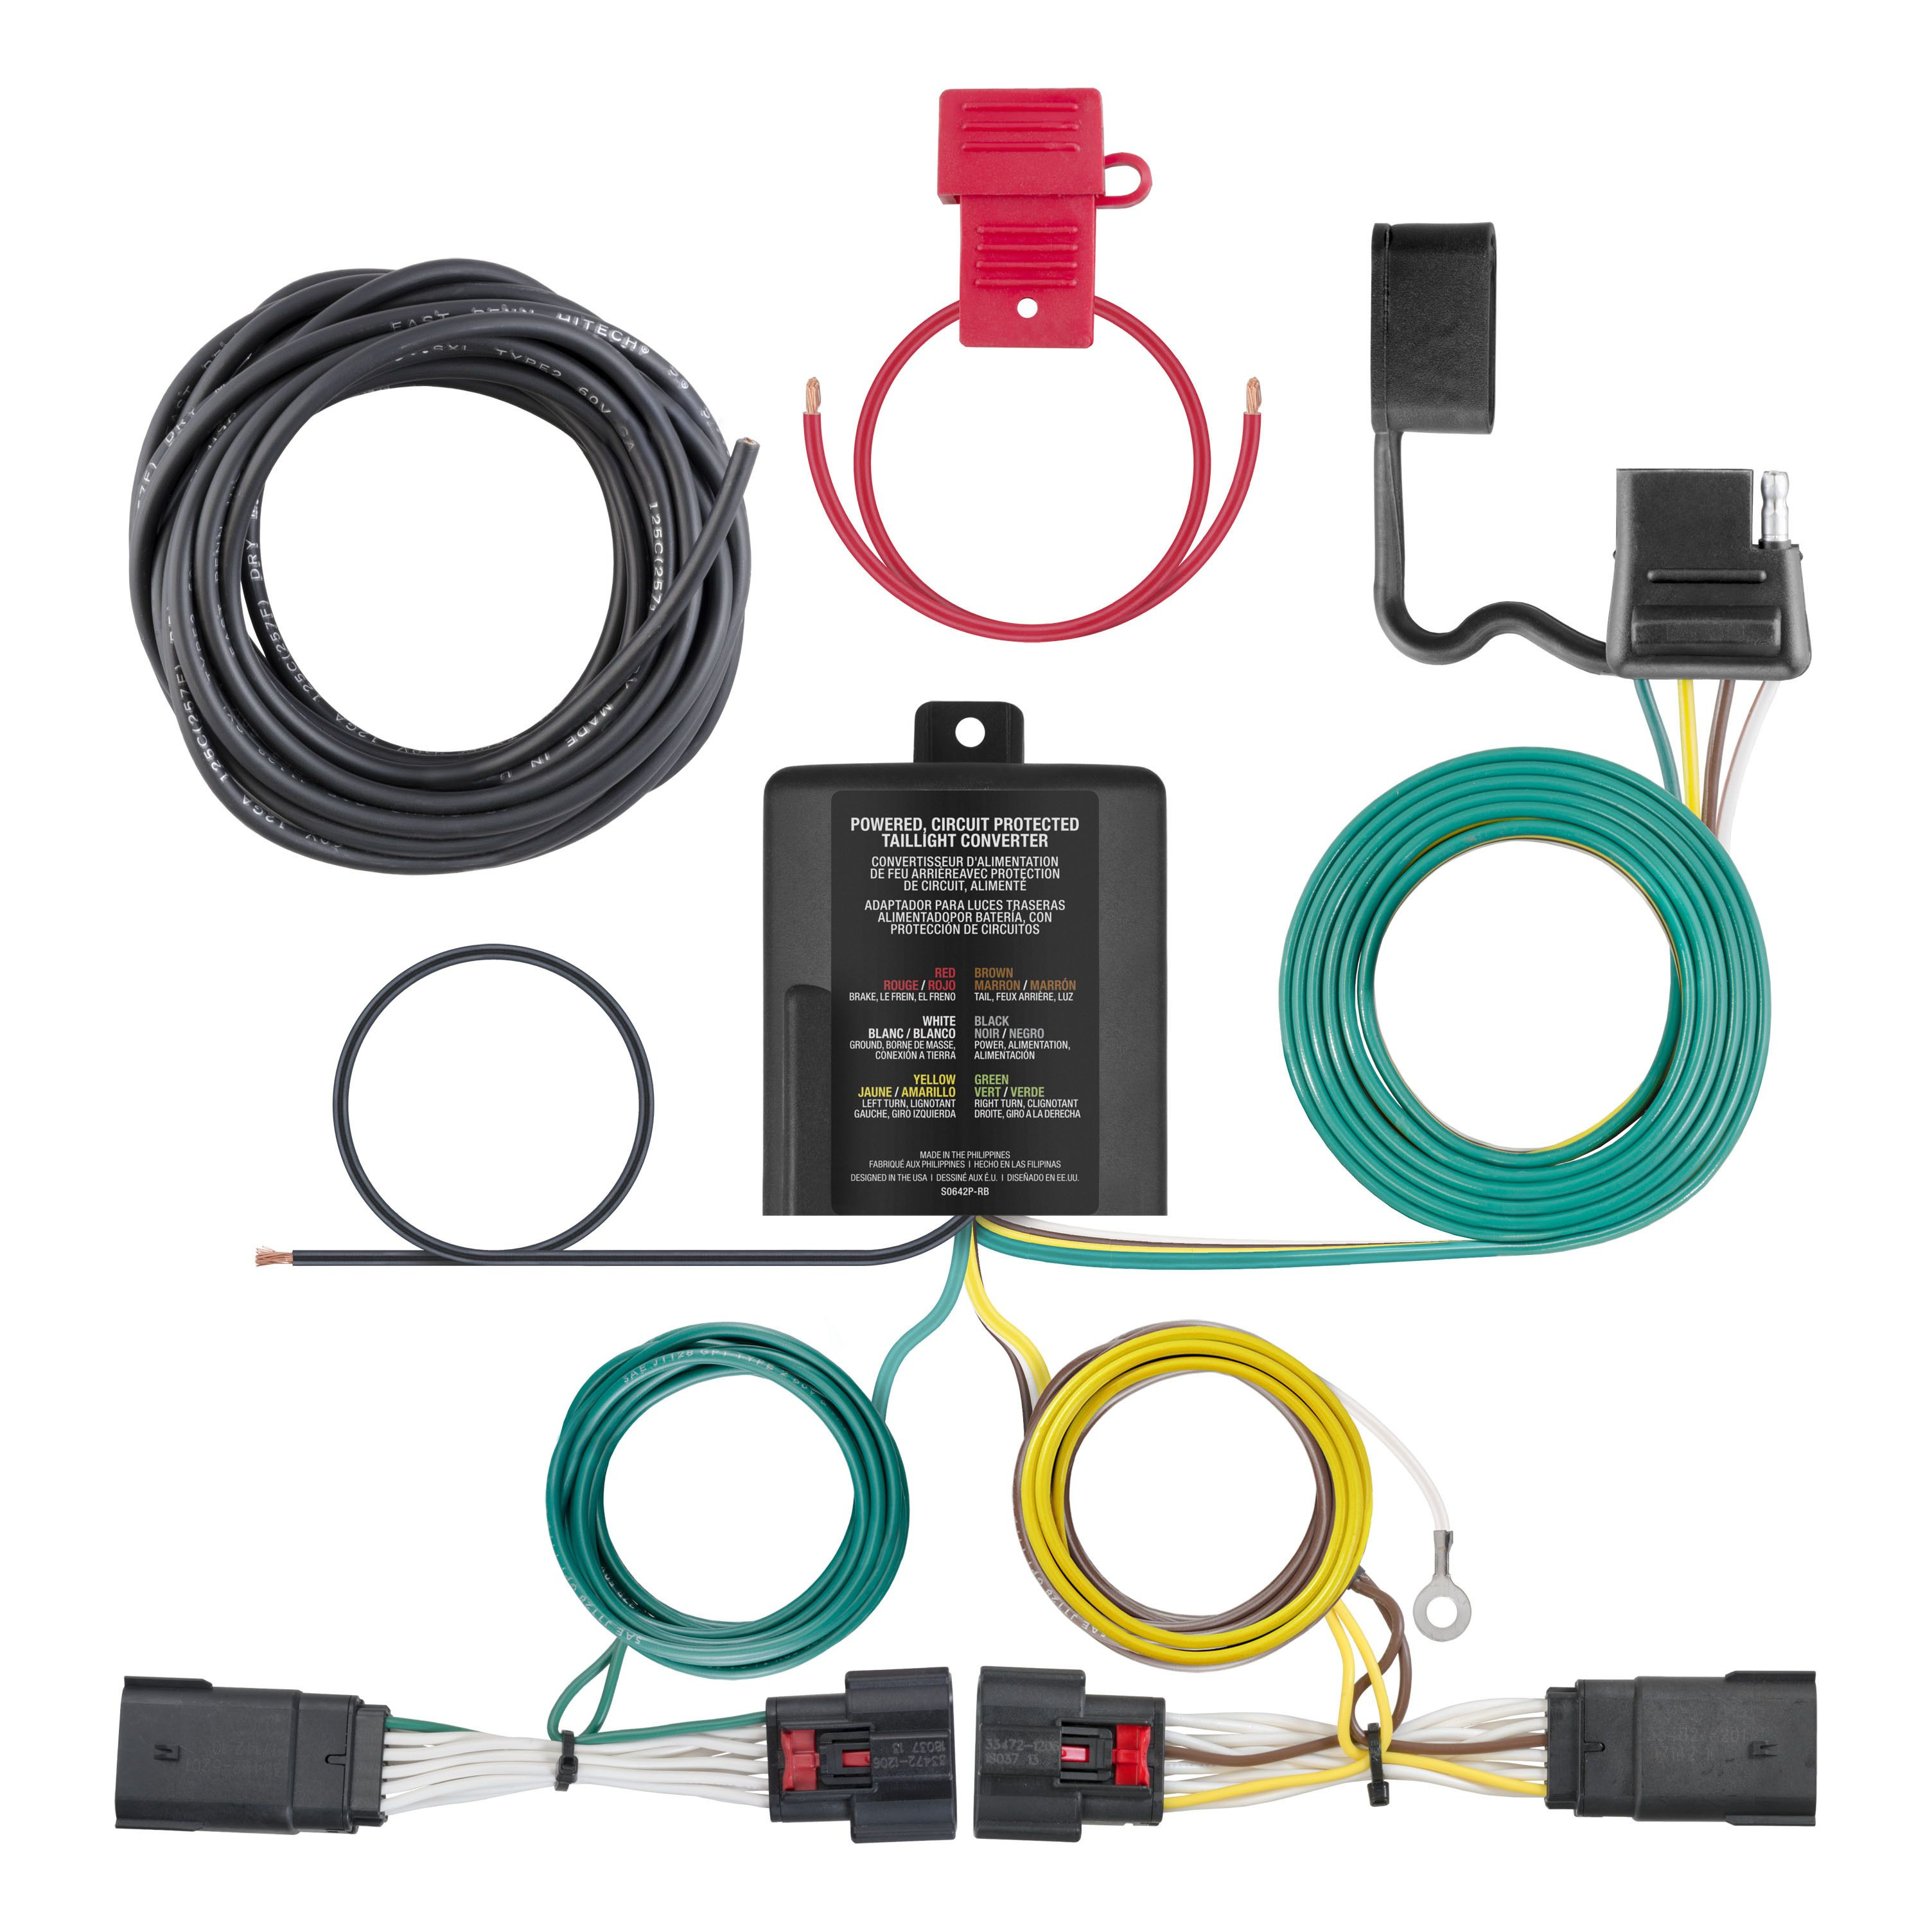 7 Way And 4 Wiring Tow Campways Truck Accessory World With Either A Or Plug Give Us Call You Vehicle Information Stop By Our Friendly Staff Will Be More Than Happy To Assist